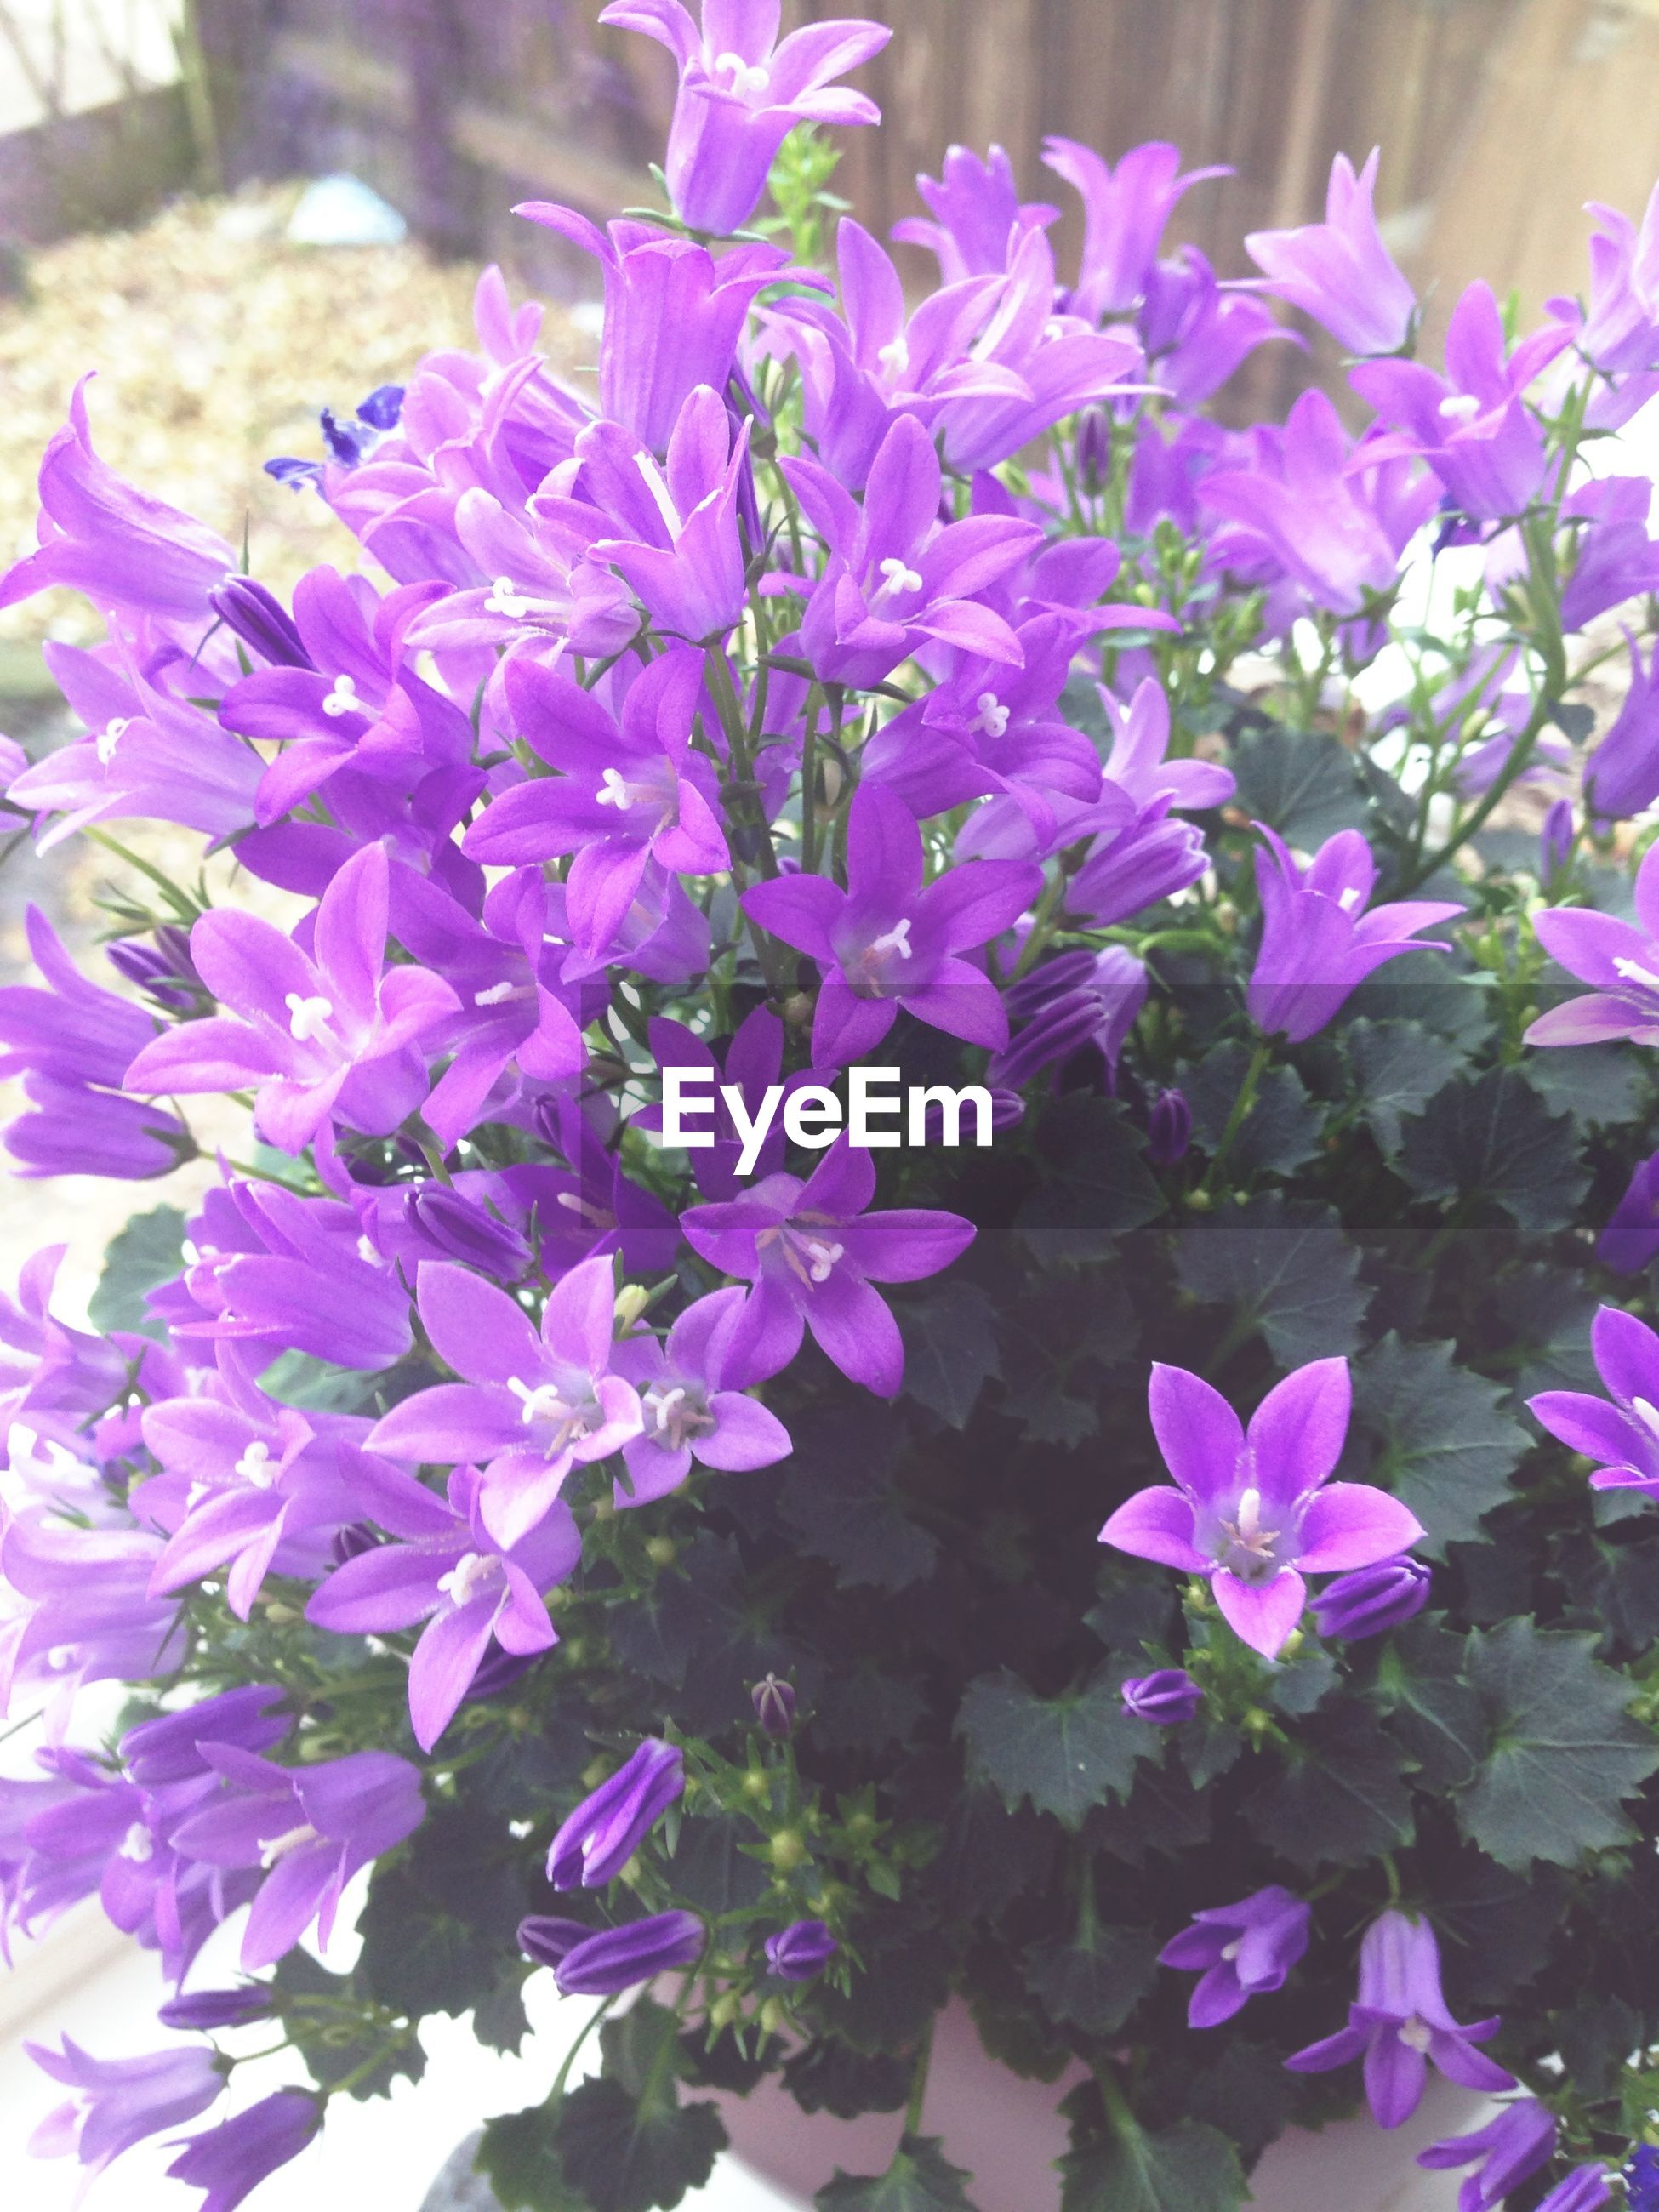 flower, freshness, petal, purple, fragility, flower head, beauty in nature, growth, close-up, pink color, nature, plant, blooming, focus on foreground, in bloom, high angle view, no people, selective focus, day, park - man made space